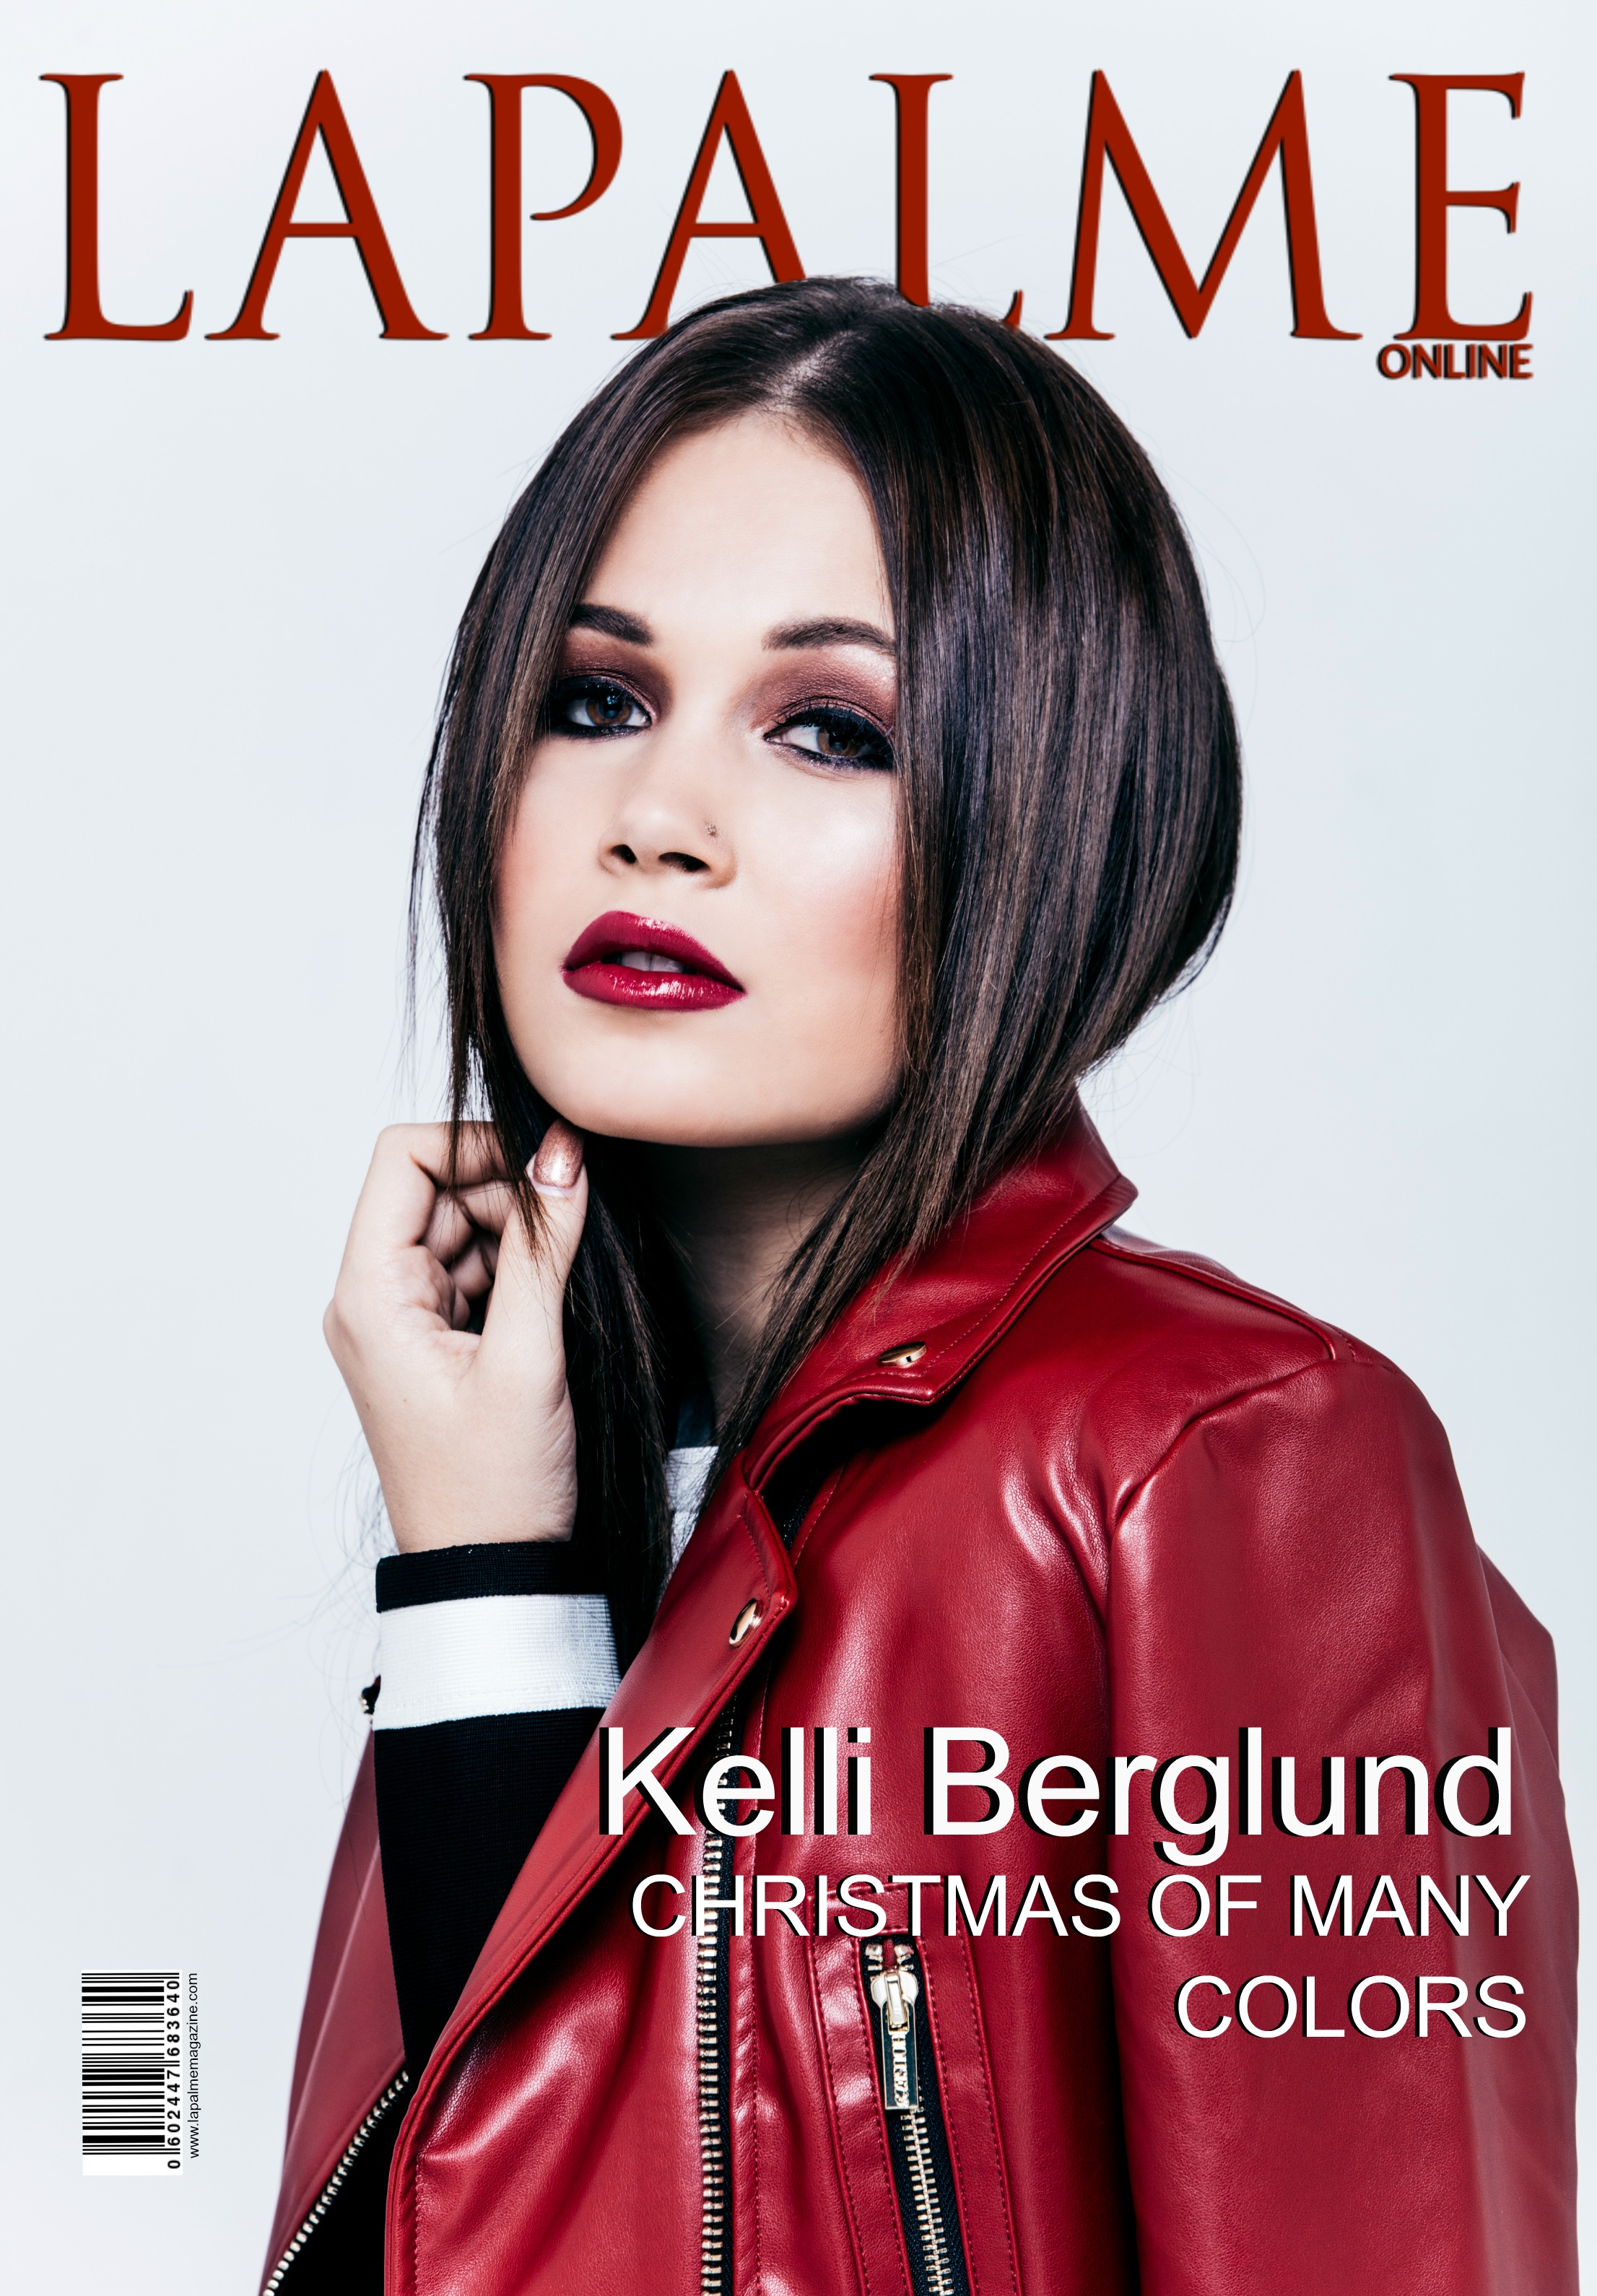 Kelli Berglund: 10 Things You Need To Know About Her and 'Christmas of Many Colors'